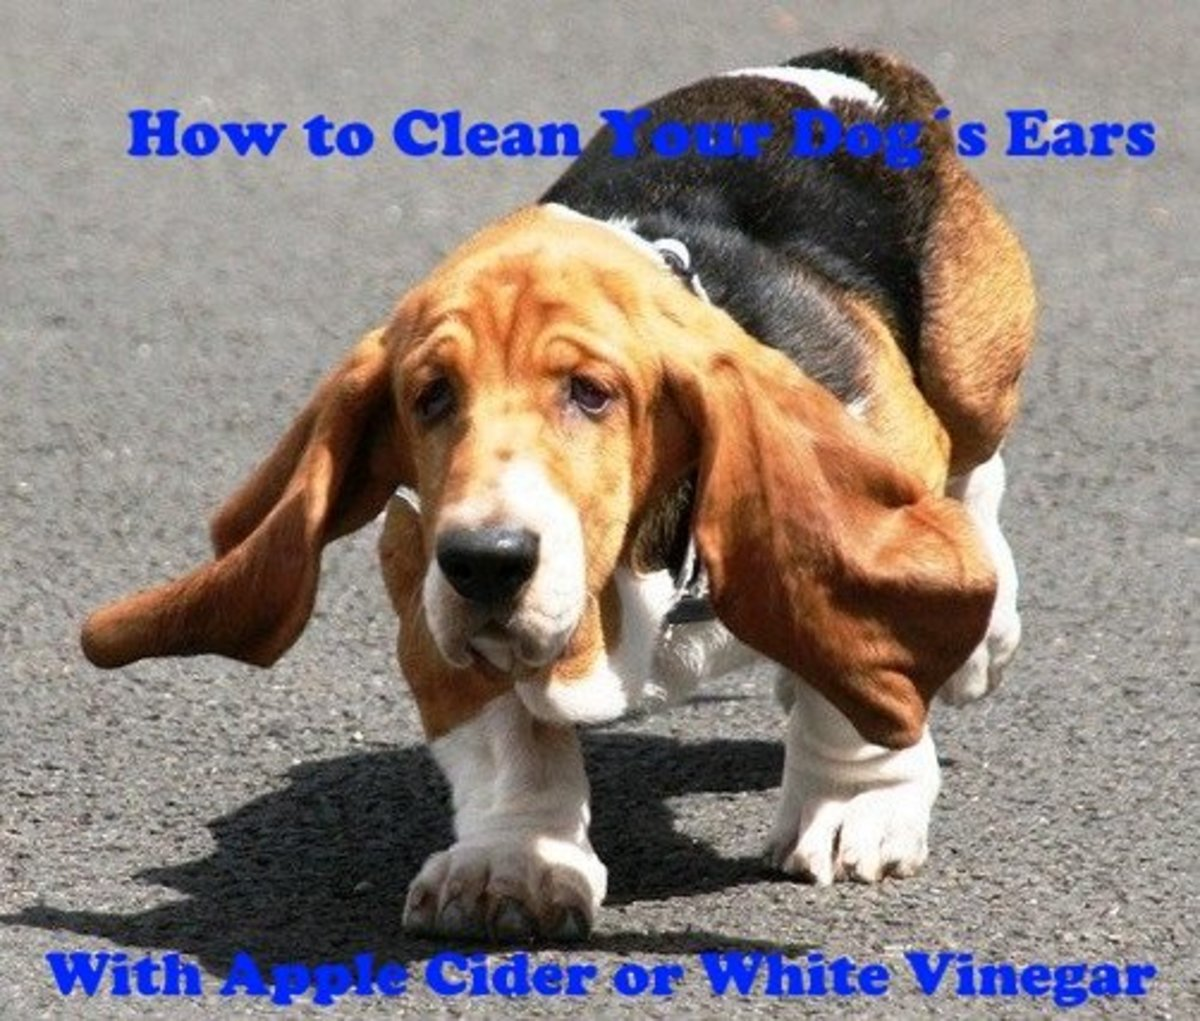 How to clean your dogs ears with apple cider vinegar or white vinegar.